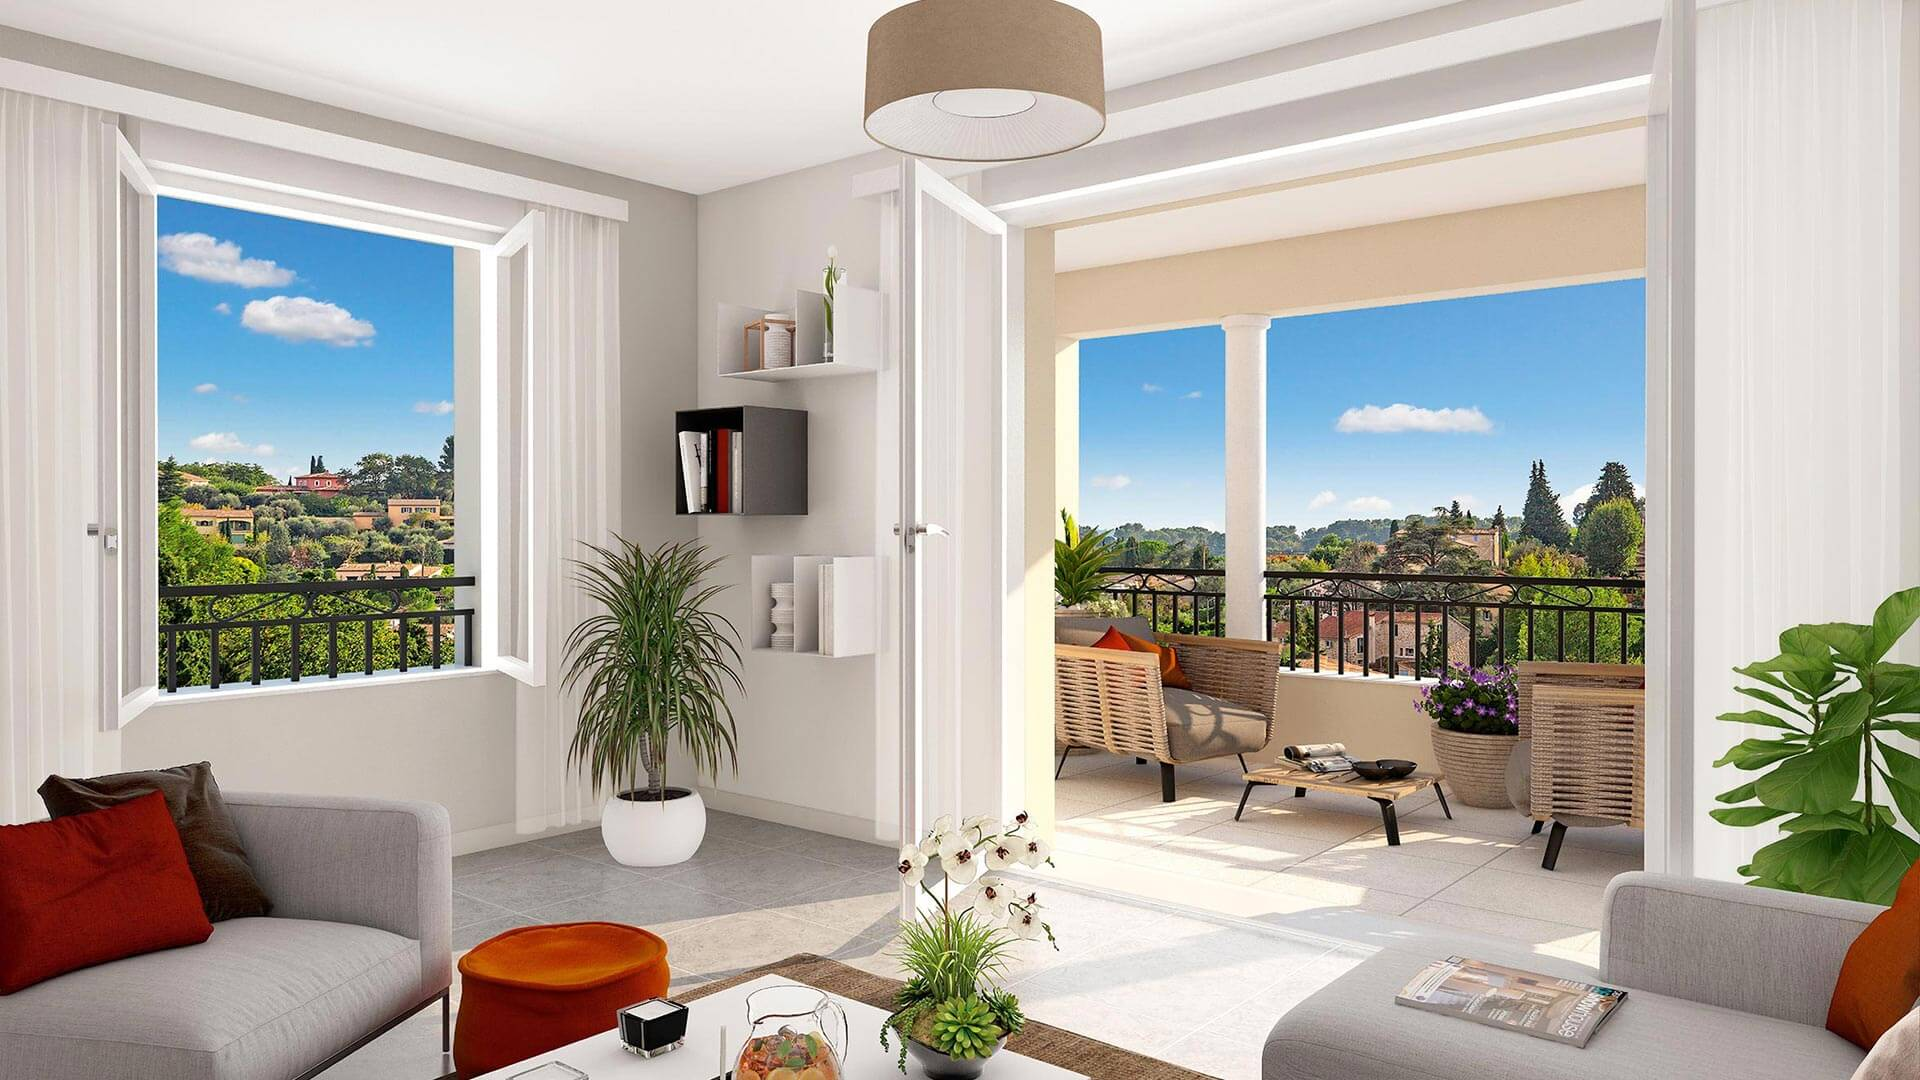 Lices de provence programme immobilier neuf le rouret for Aide achat immobilier neuf